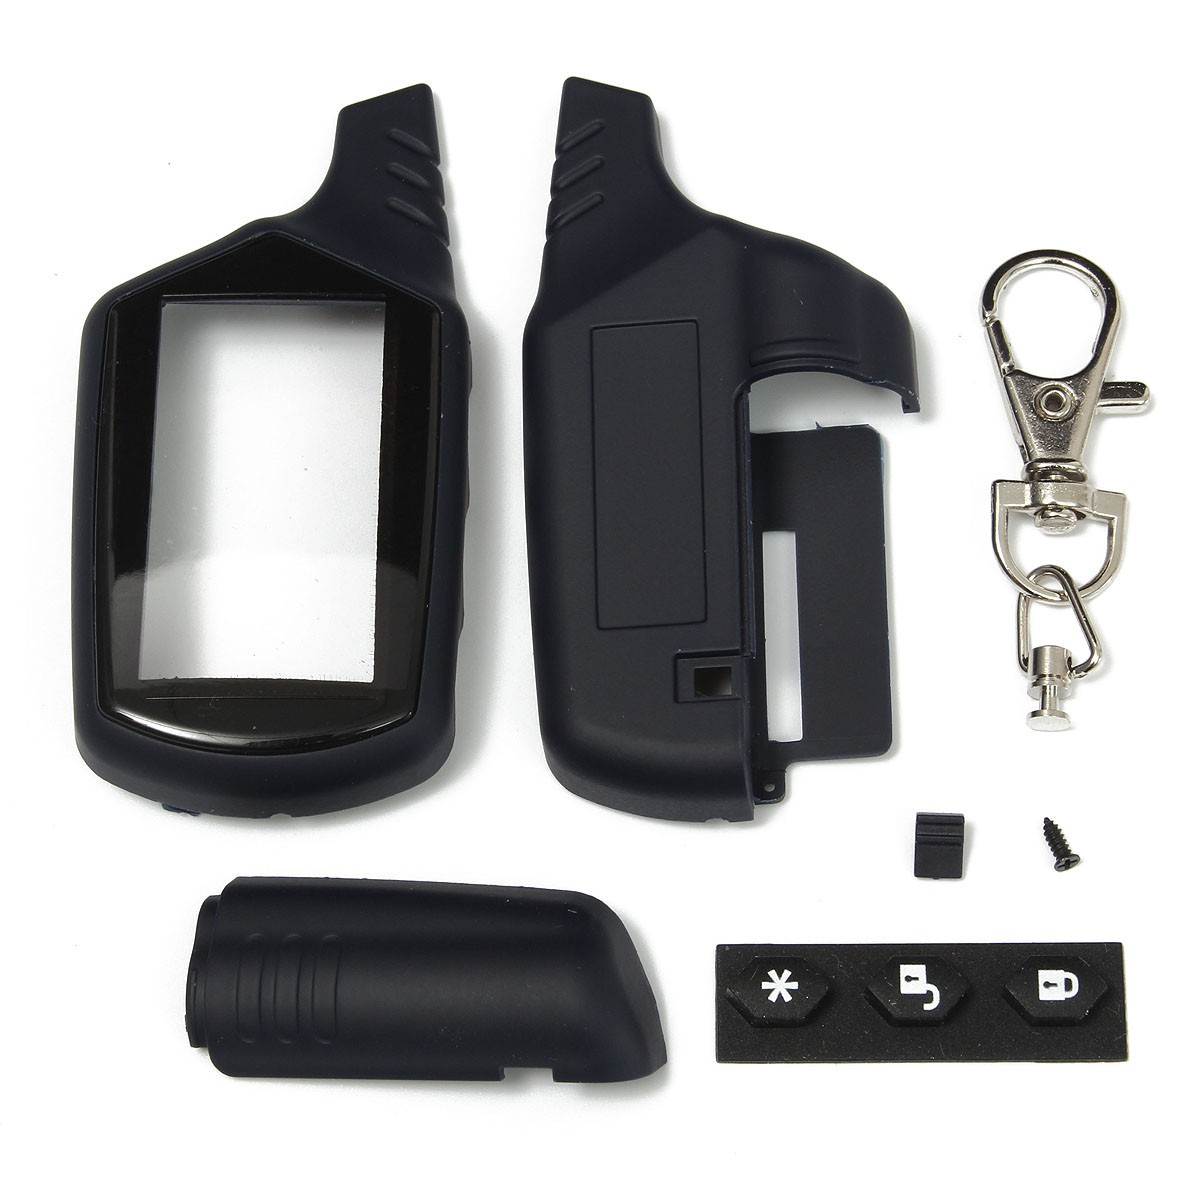 Black A91 Key Shell Keychain Case For Russian Version Starline lcd Remote Two Way Car Alarm System